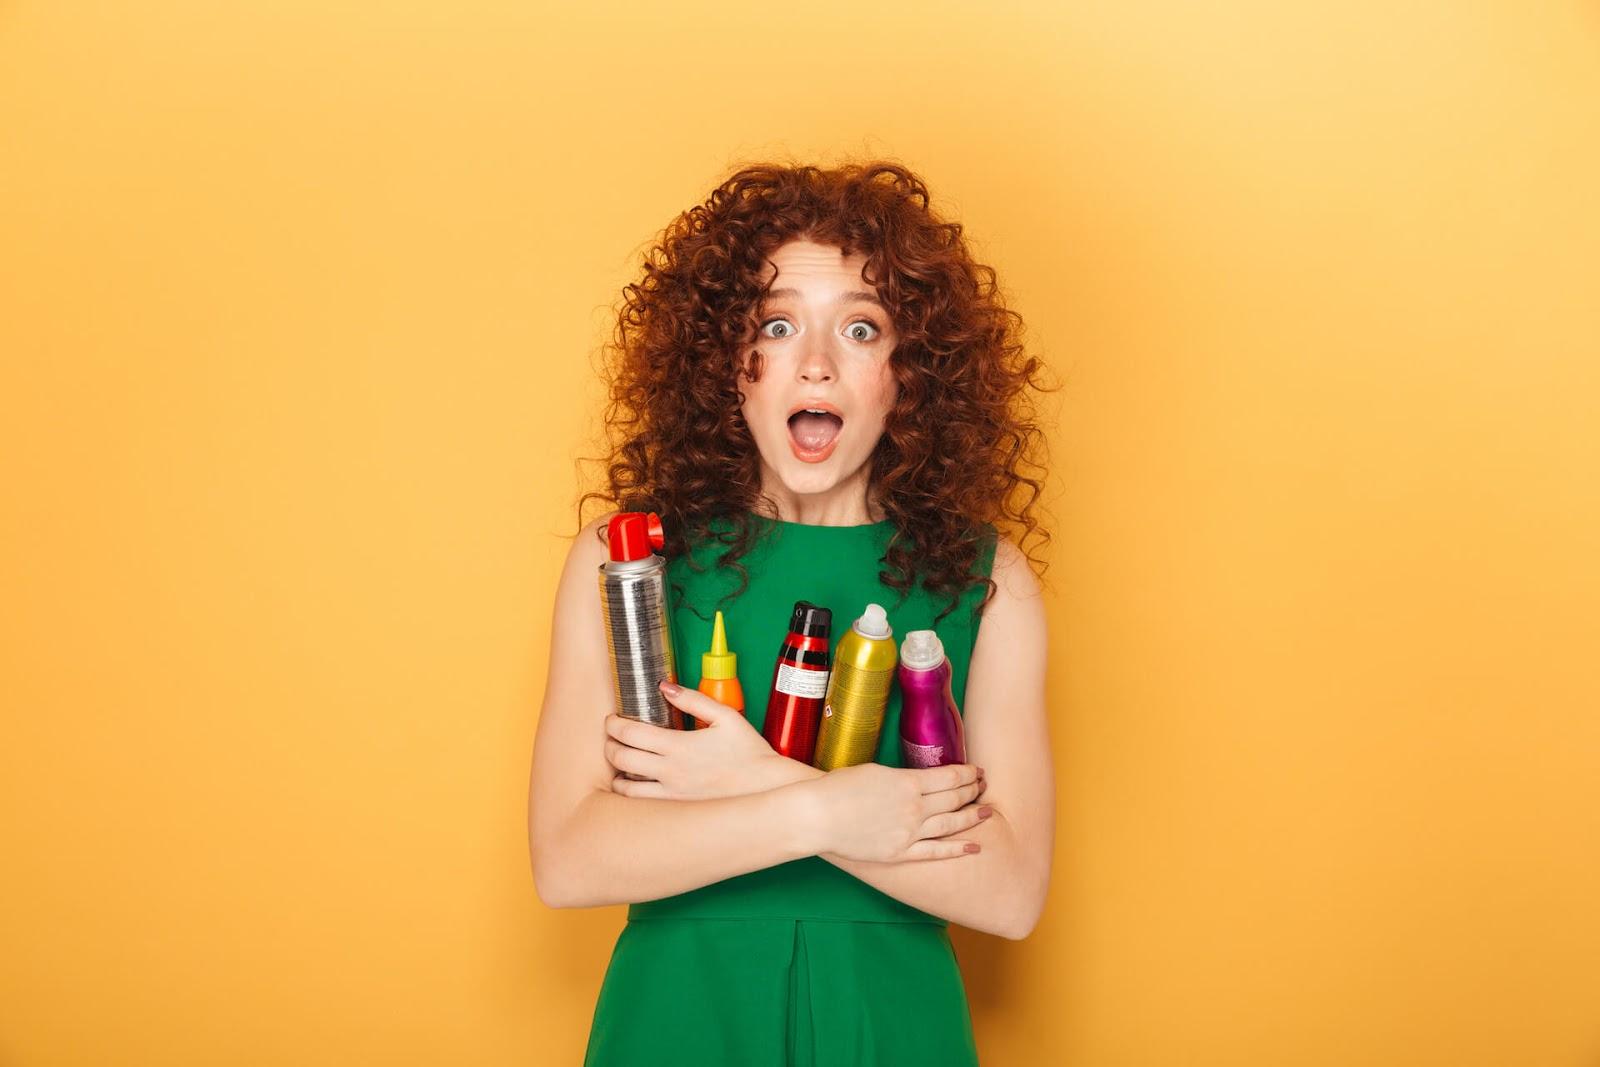 Curly-haired woman holding onto her hair products that aren't curly girl method approved